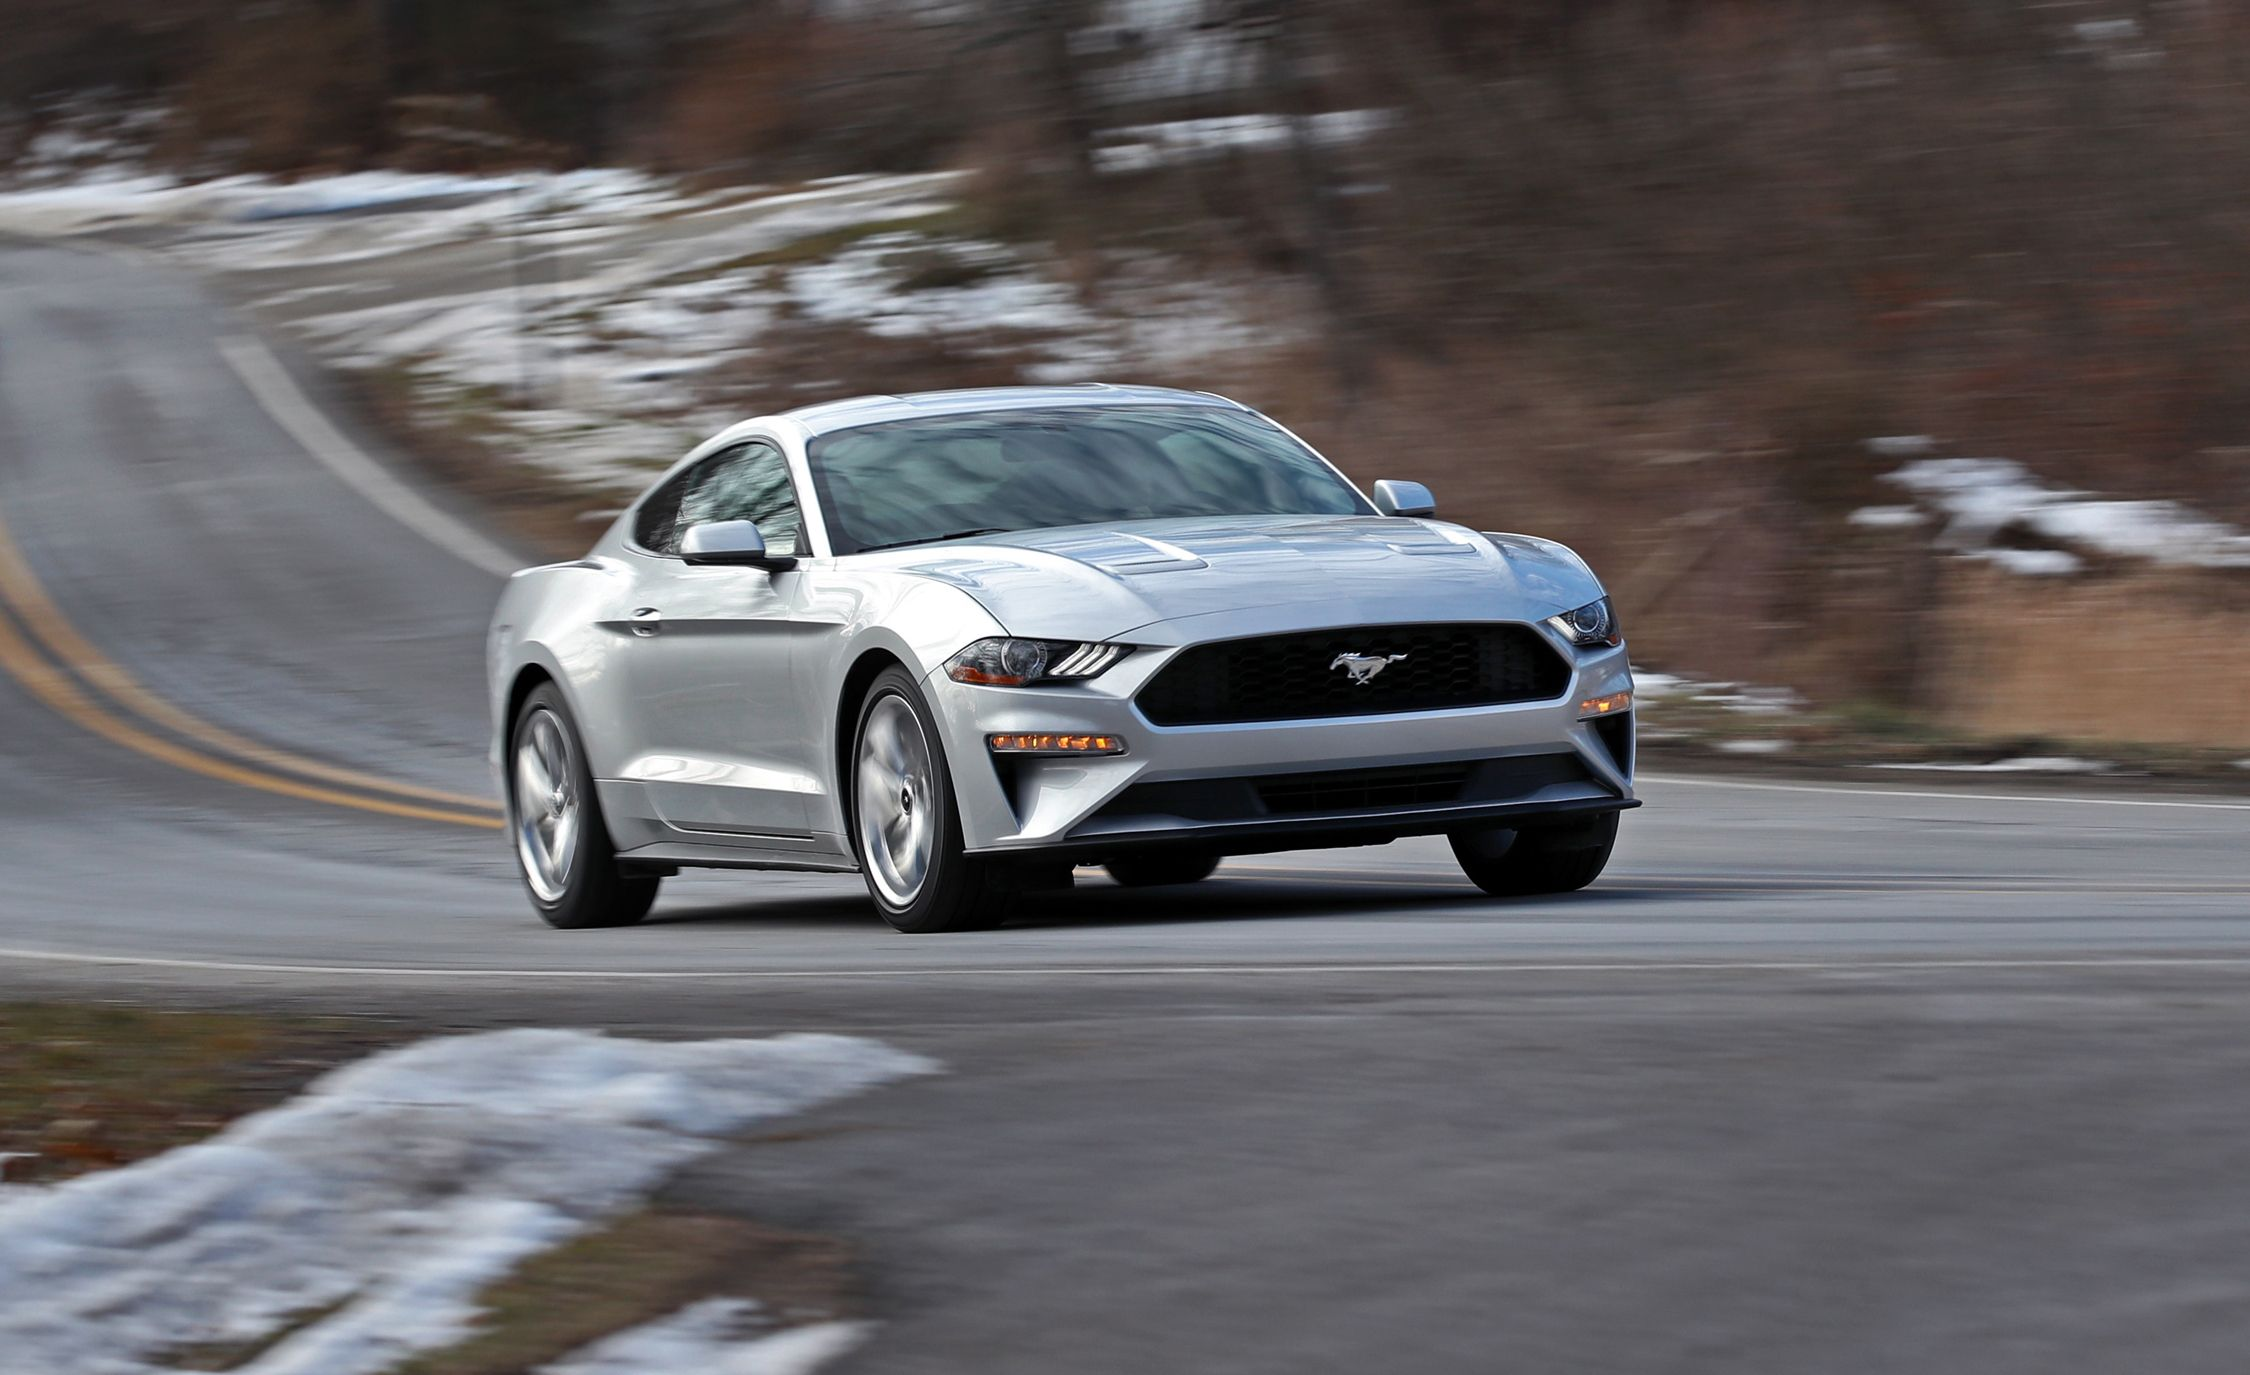 2018 Ford Mustang 2.3L EcoBoost Manual Test: Does More Torque Help the Turbo Model? | Review ...